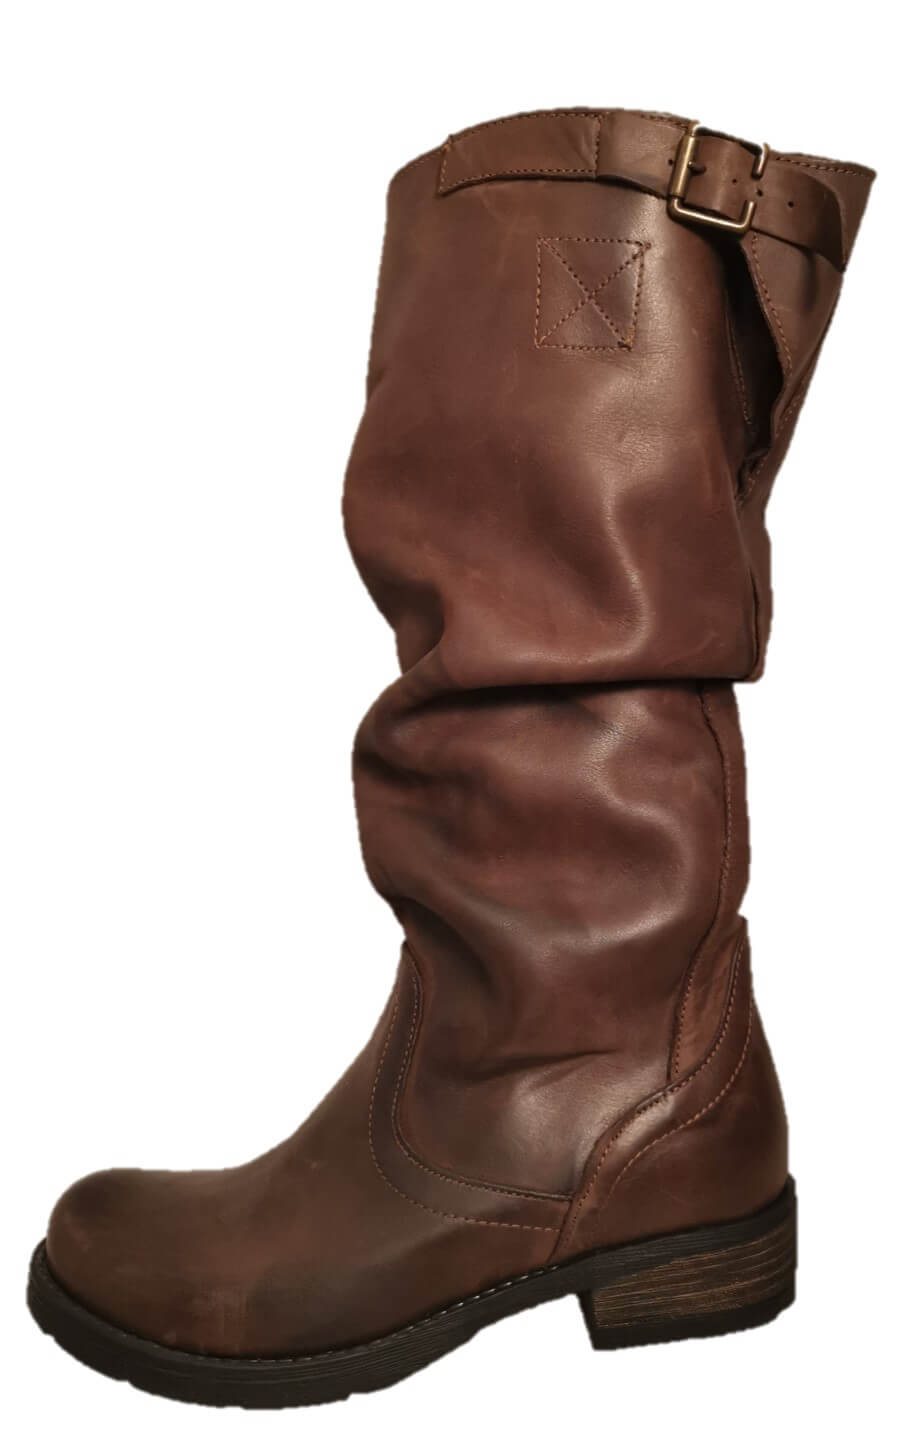 brown sloouch boots